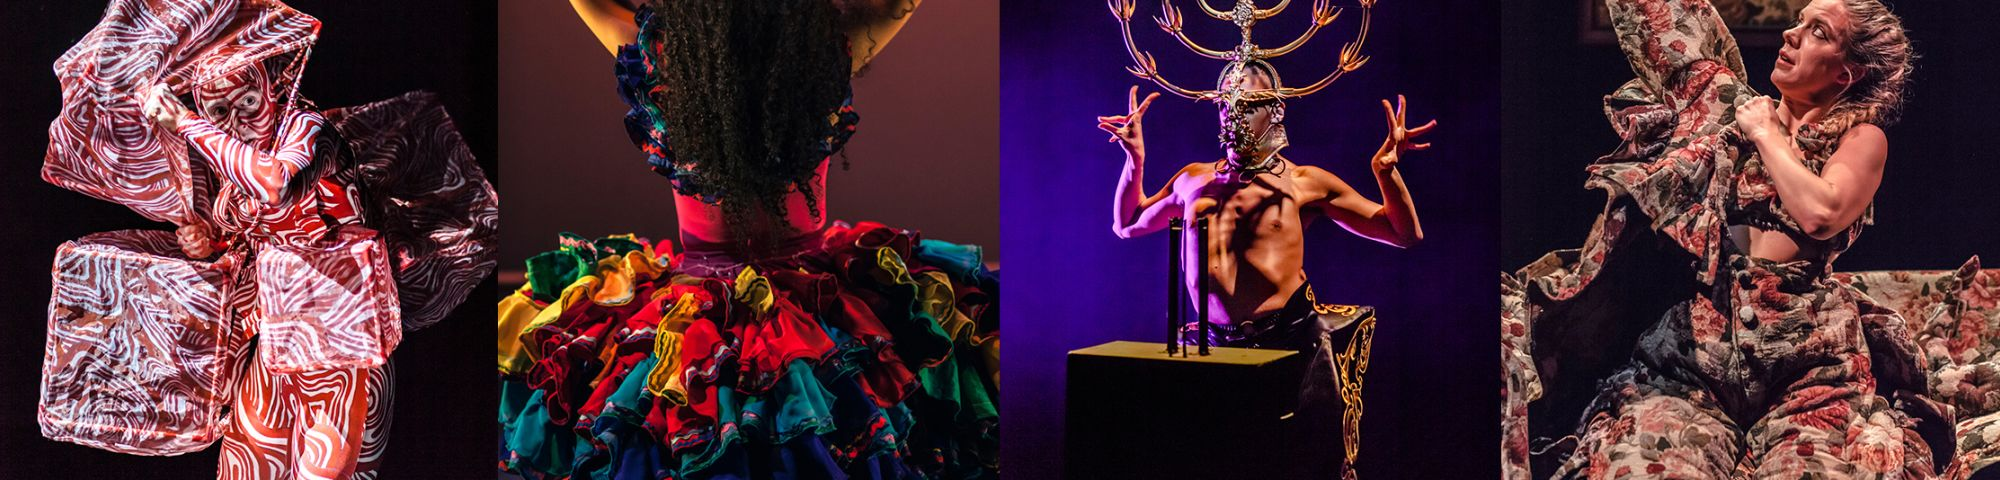 Costumes designed by LCF students from MA Costume Design for Performance